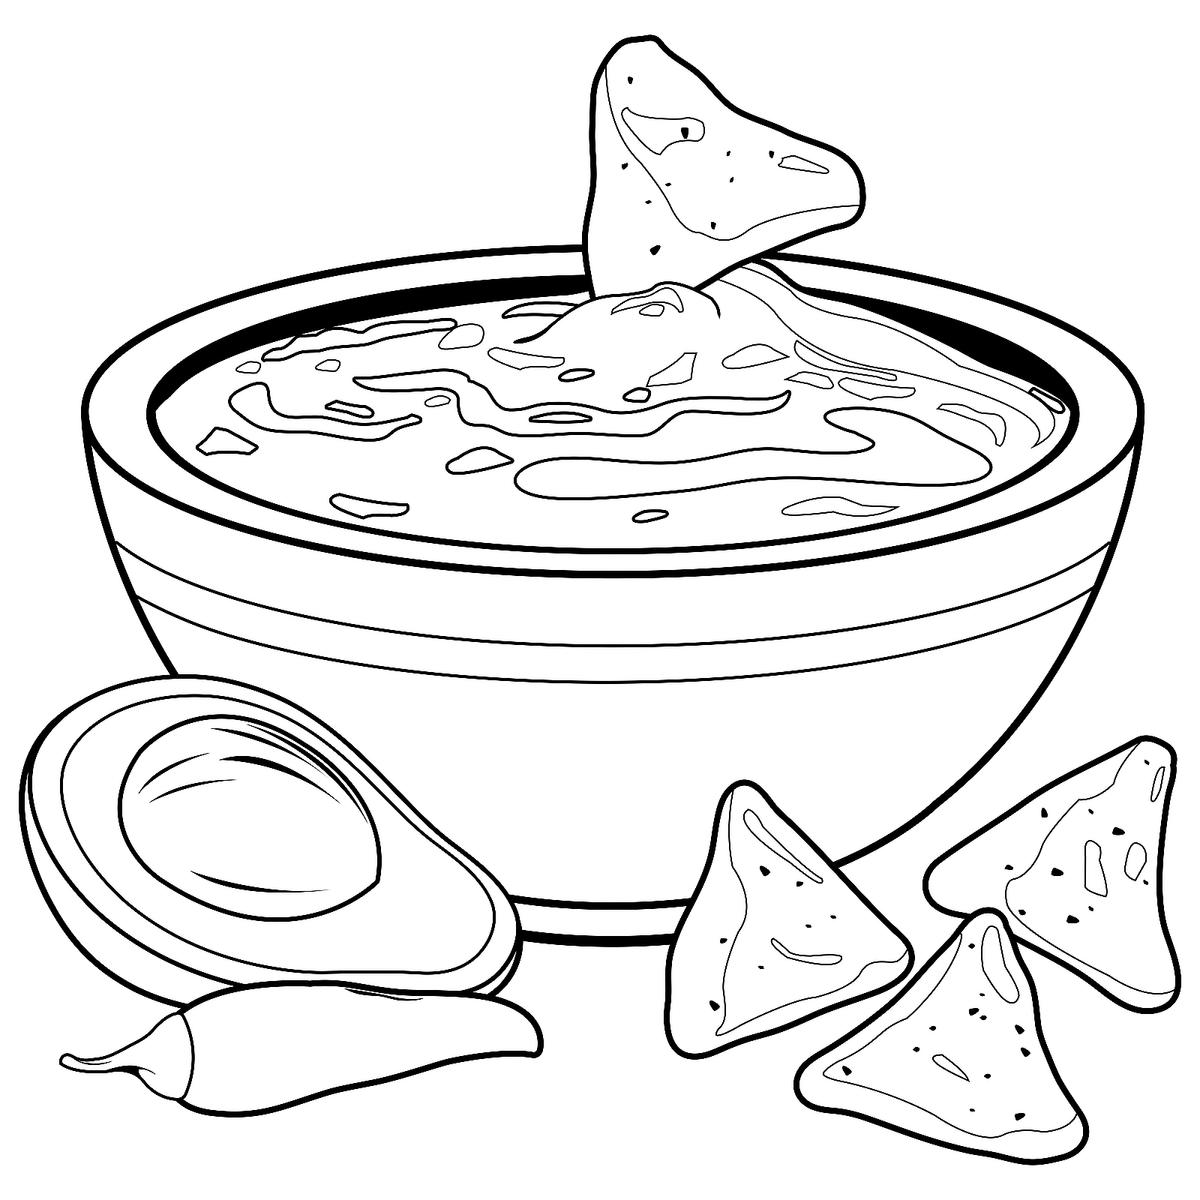 coloring pages of food cute foods coloring pages free coloring home food coloring pages of